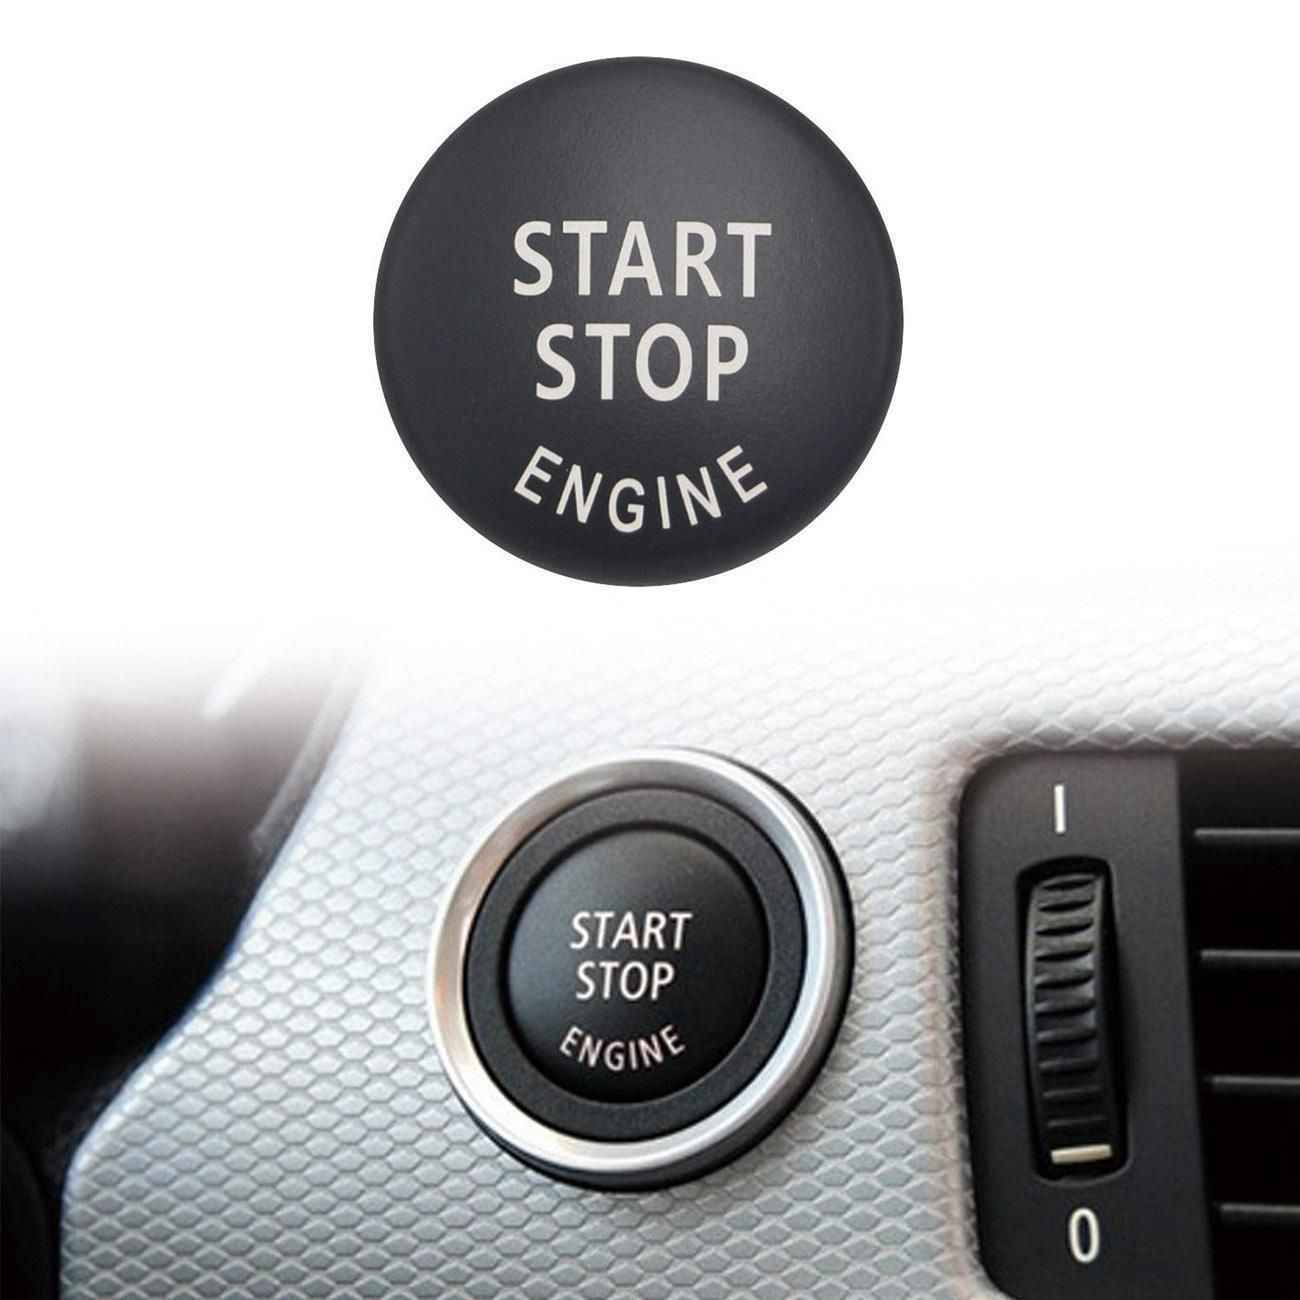 start stop engine button push button ignition switch cover replacement for bmw x1 x3 x5 x6 [ 1300 x 1300 Pixel ]